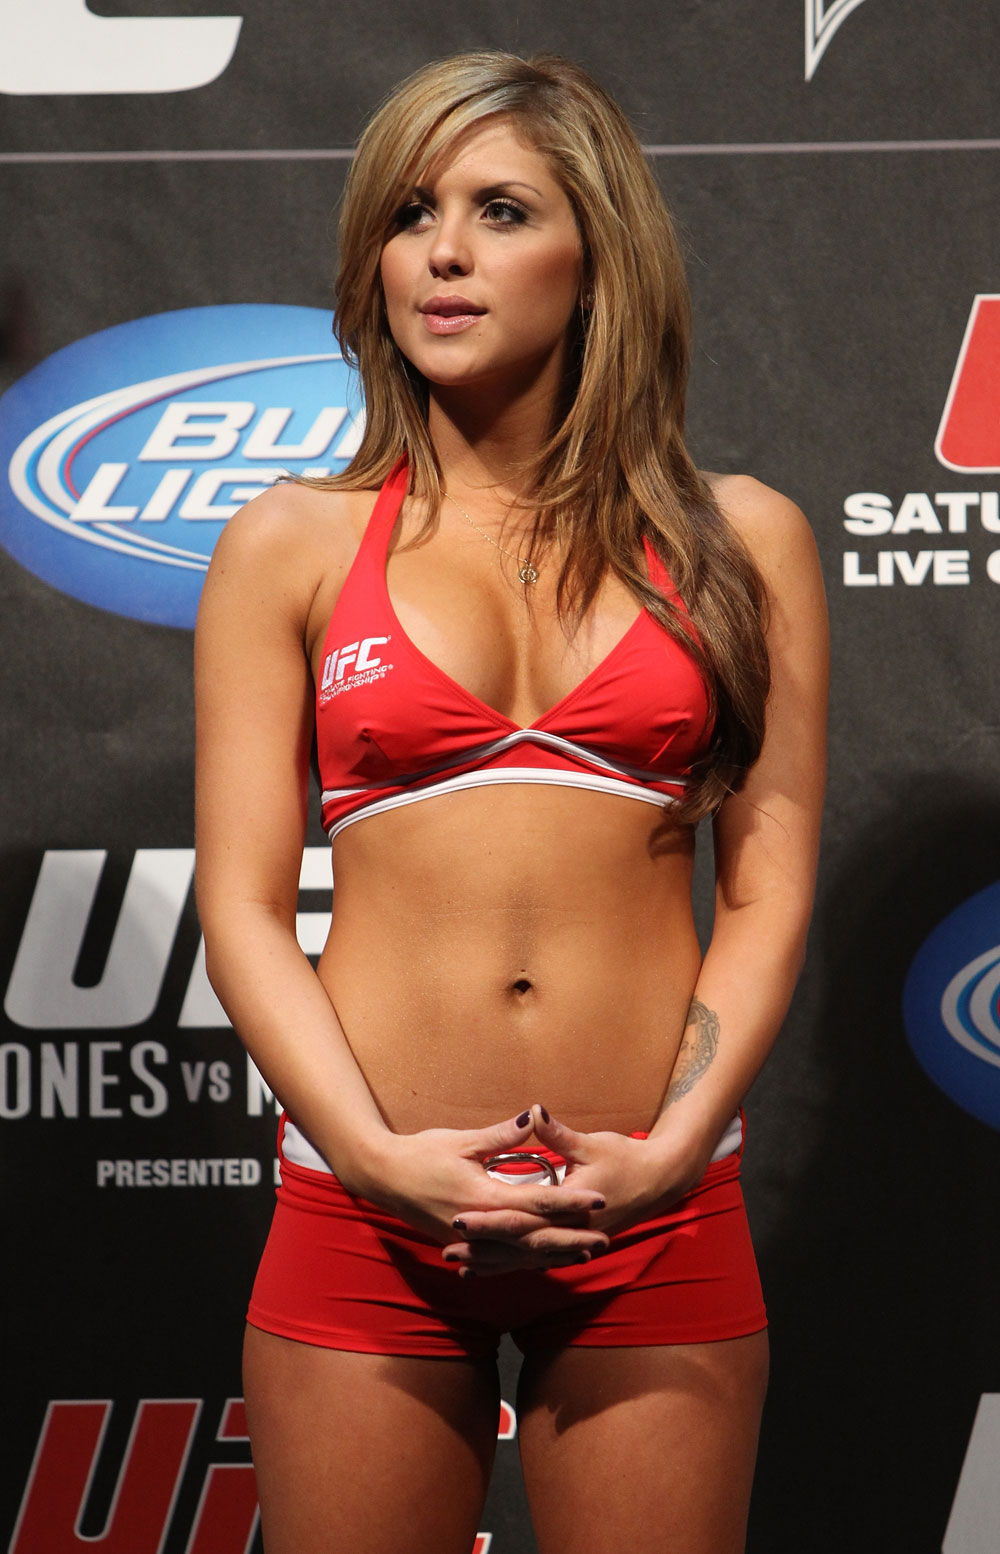 TORONTO, ON - DECEMBER 09:  UFC Octagon Girl Brittney Palmer attends the UFC 140 Official Weigh-in at the Air Canada Centre on December 9, 2011 in Toronto, Canada.  (Photo by Josh Hedges/Zuffa LLC/Zuffa LLC via Getty Images)